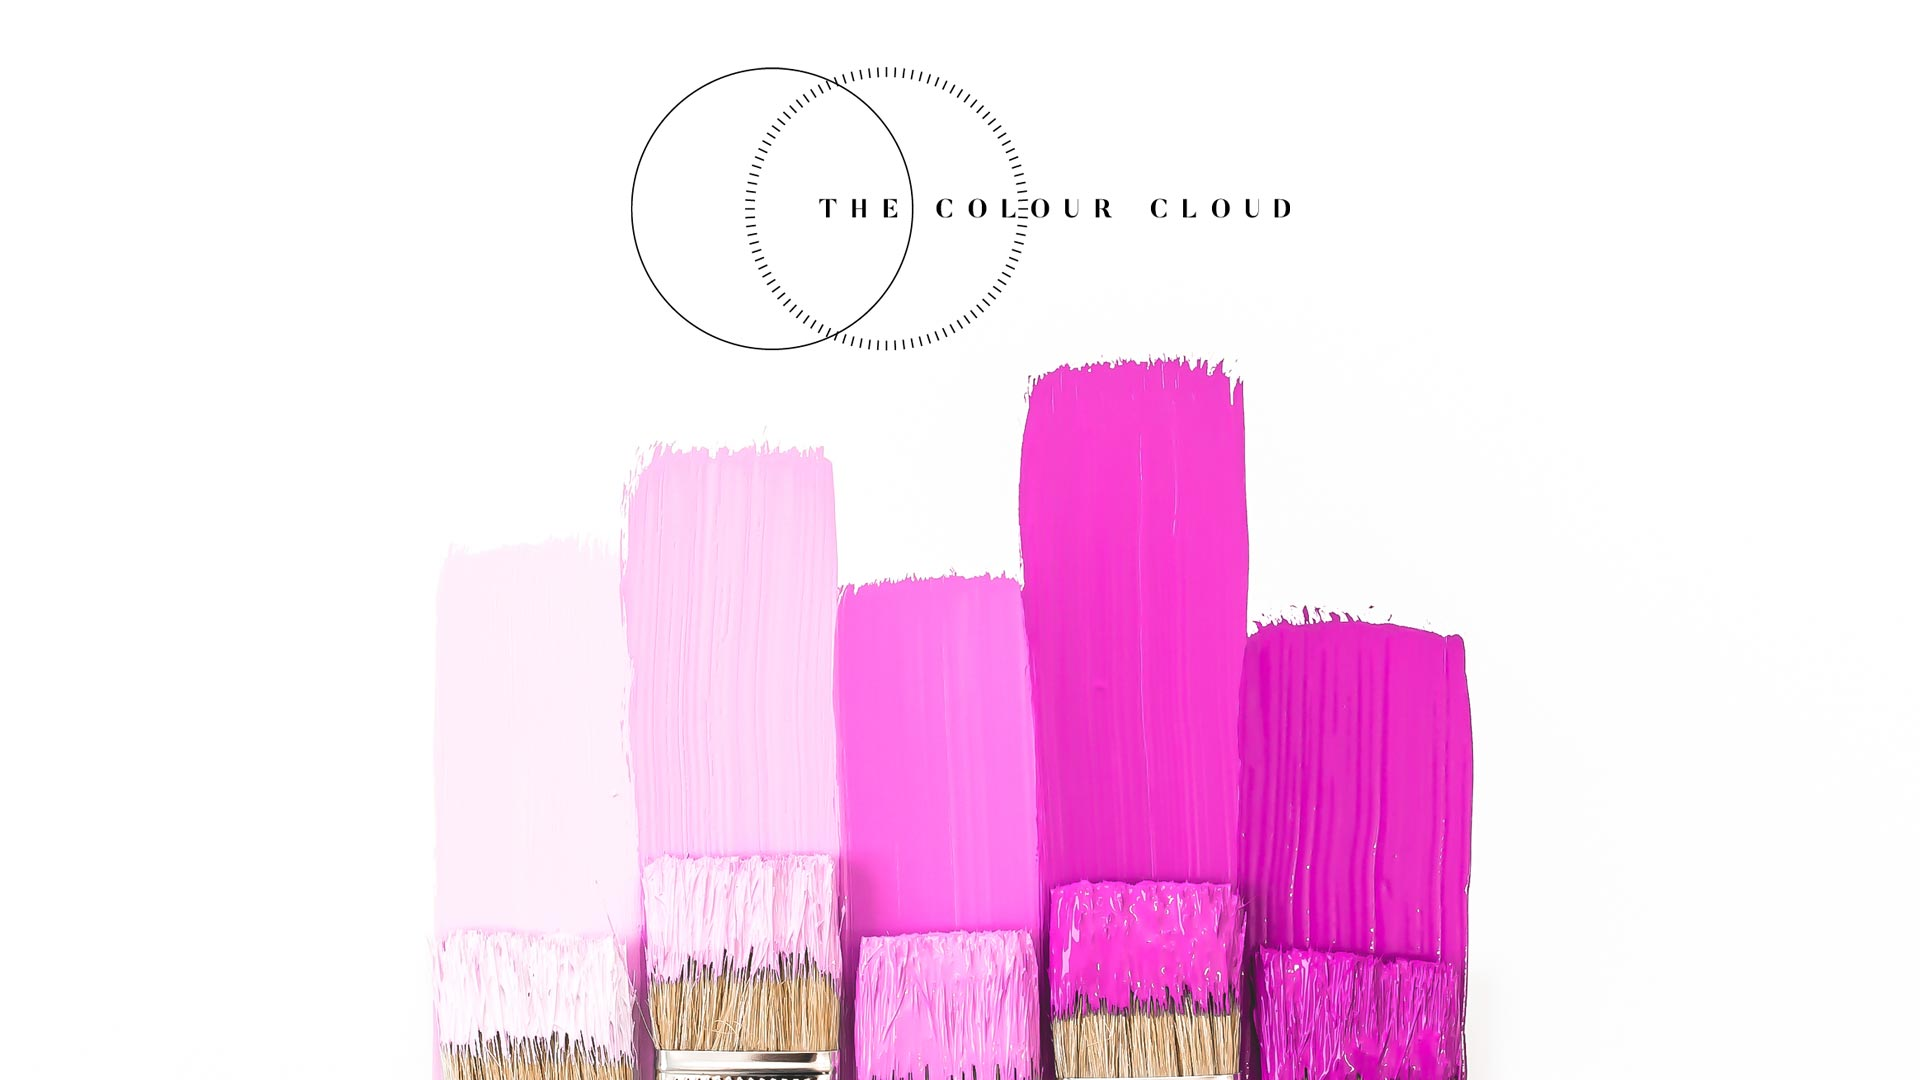 Color Inspiration for Business